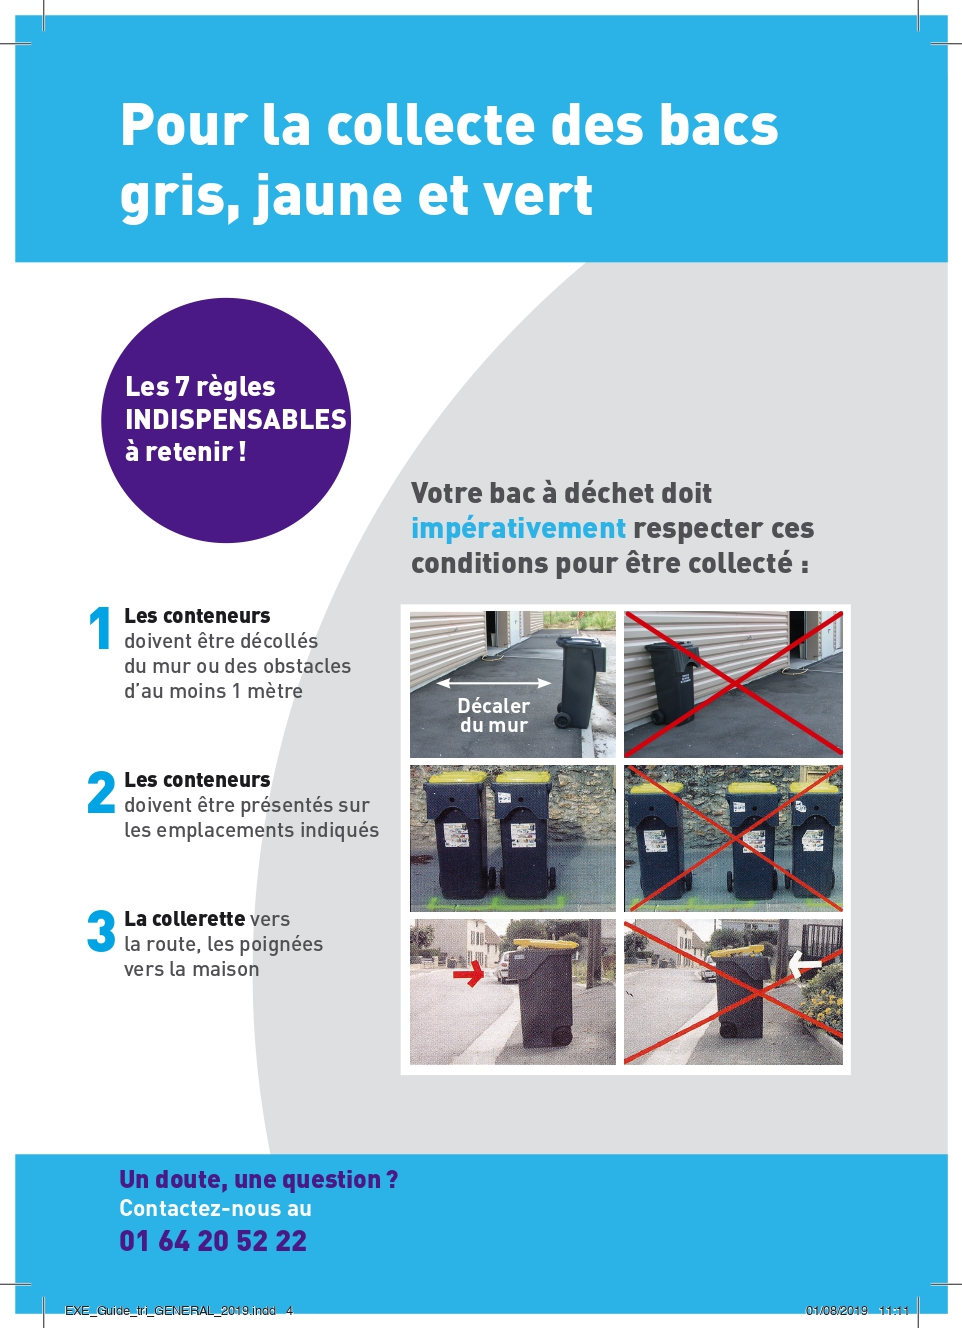 EXE_Guide_tri_2019_HD POUR IMPRIMEUR_pages-to-jpg-0004